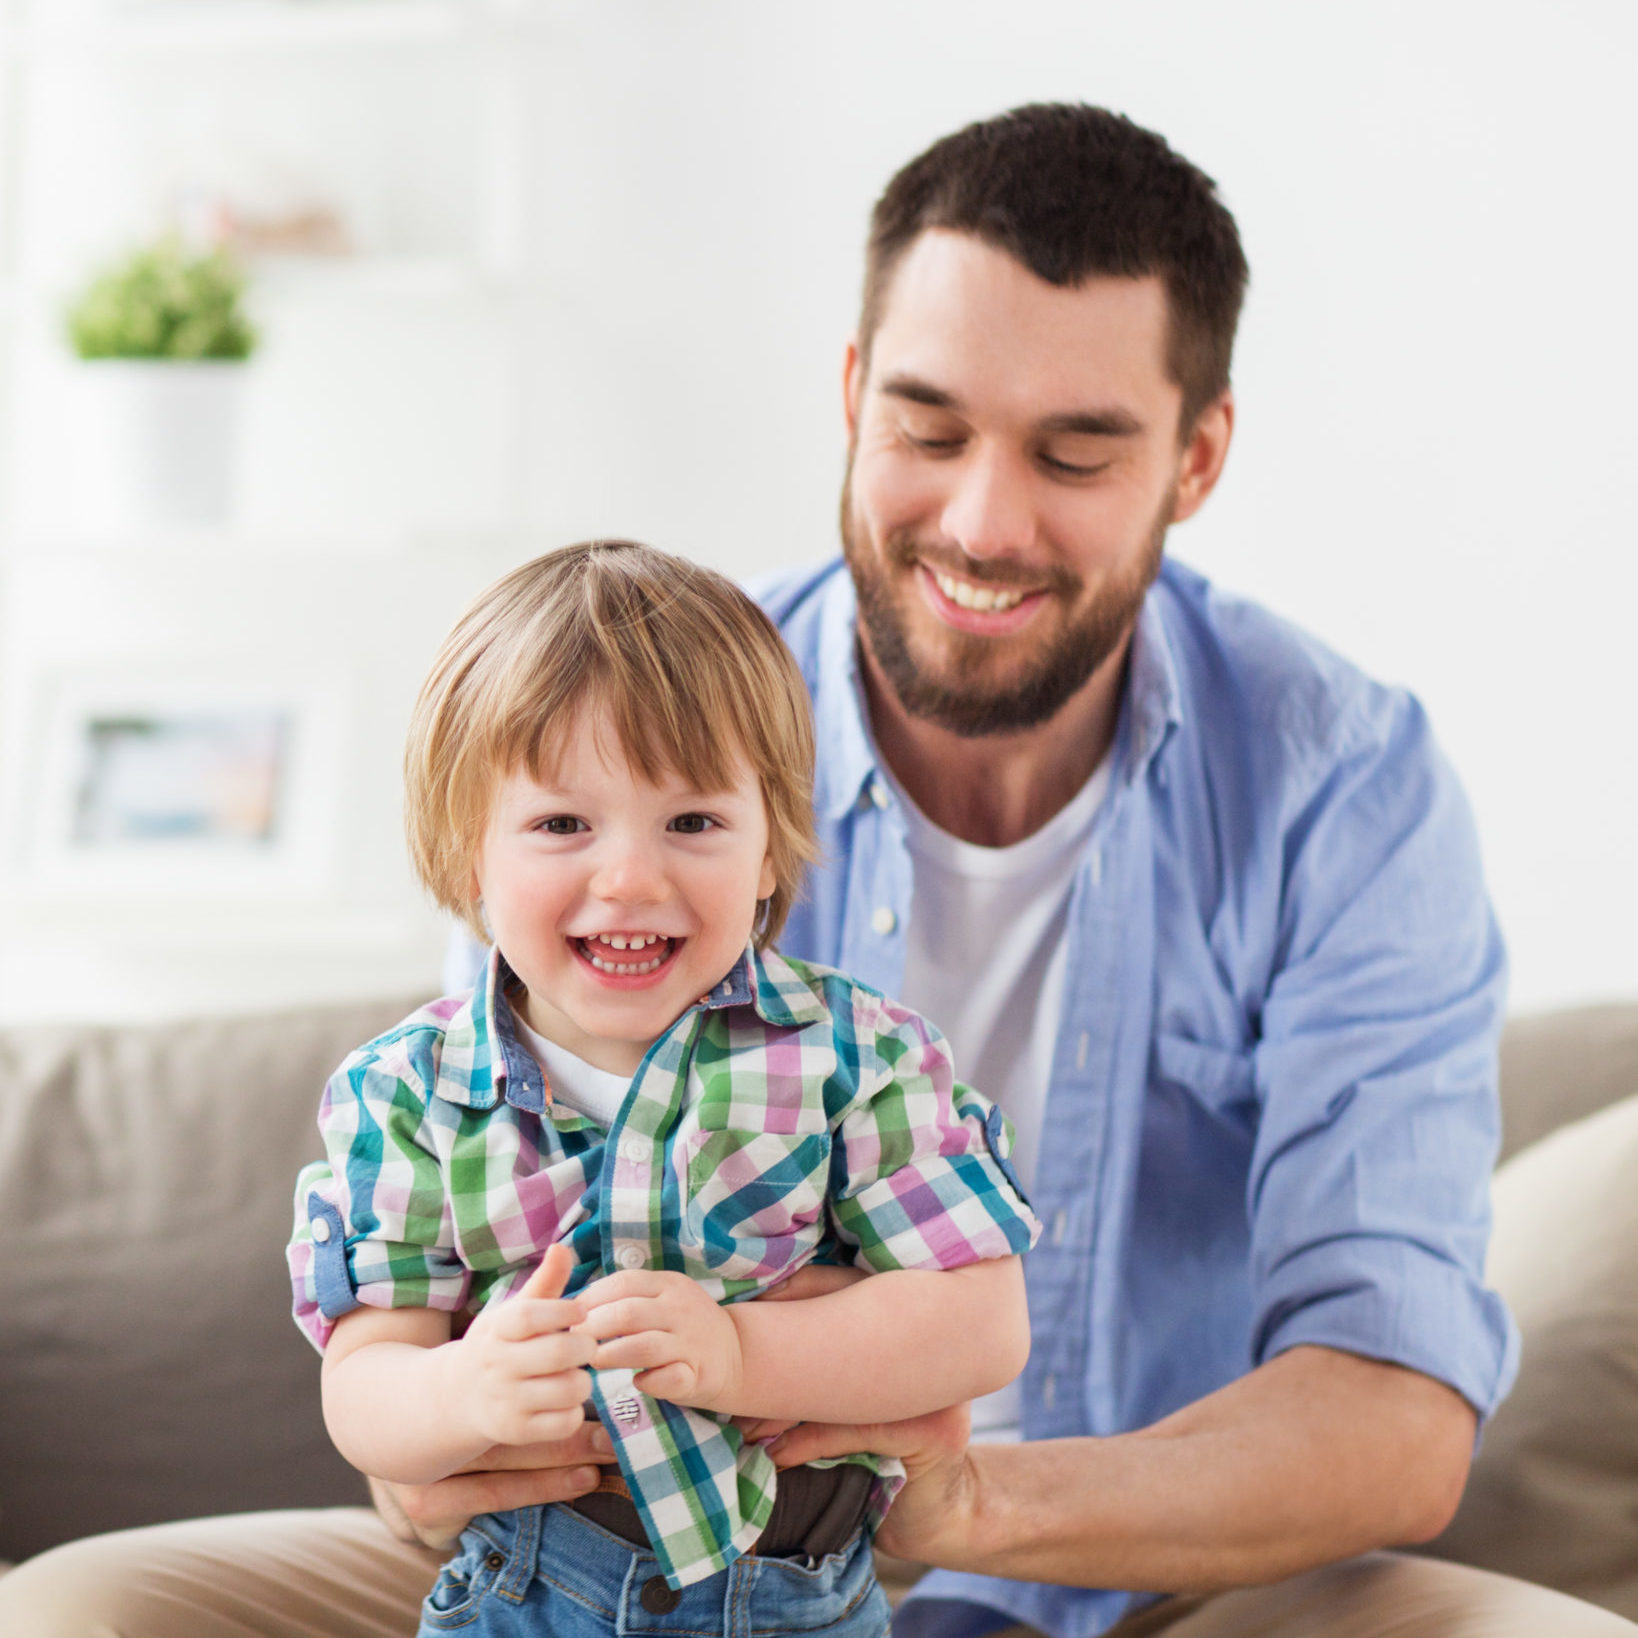 family and people concept - happy father with little son at home